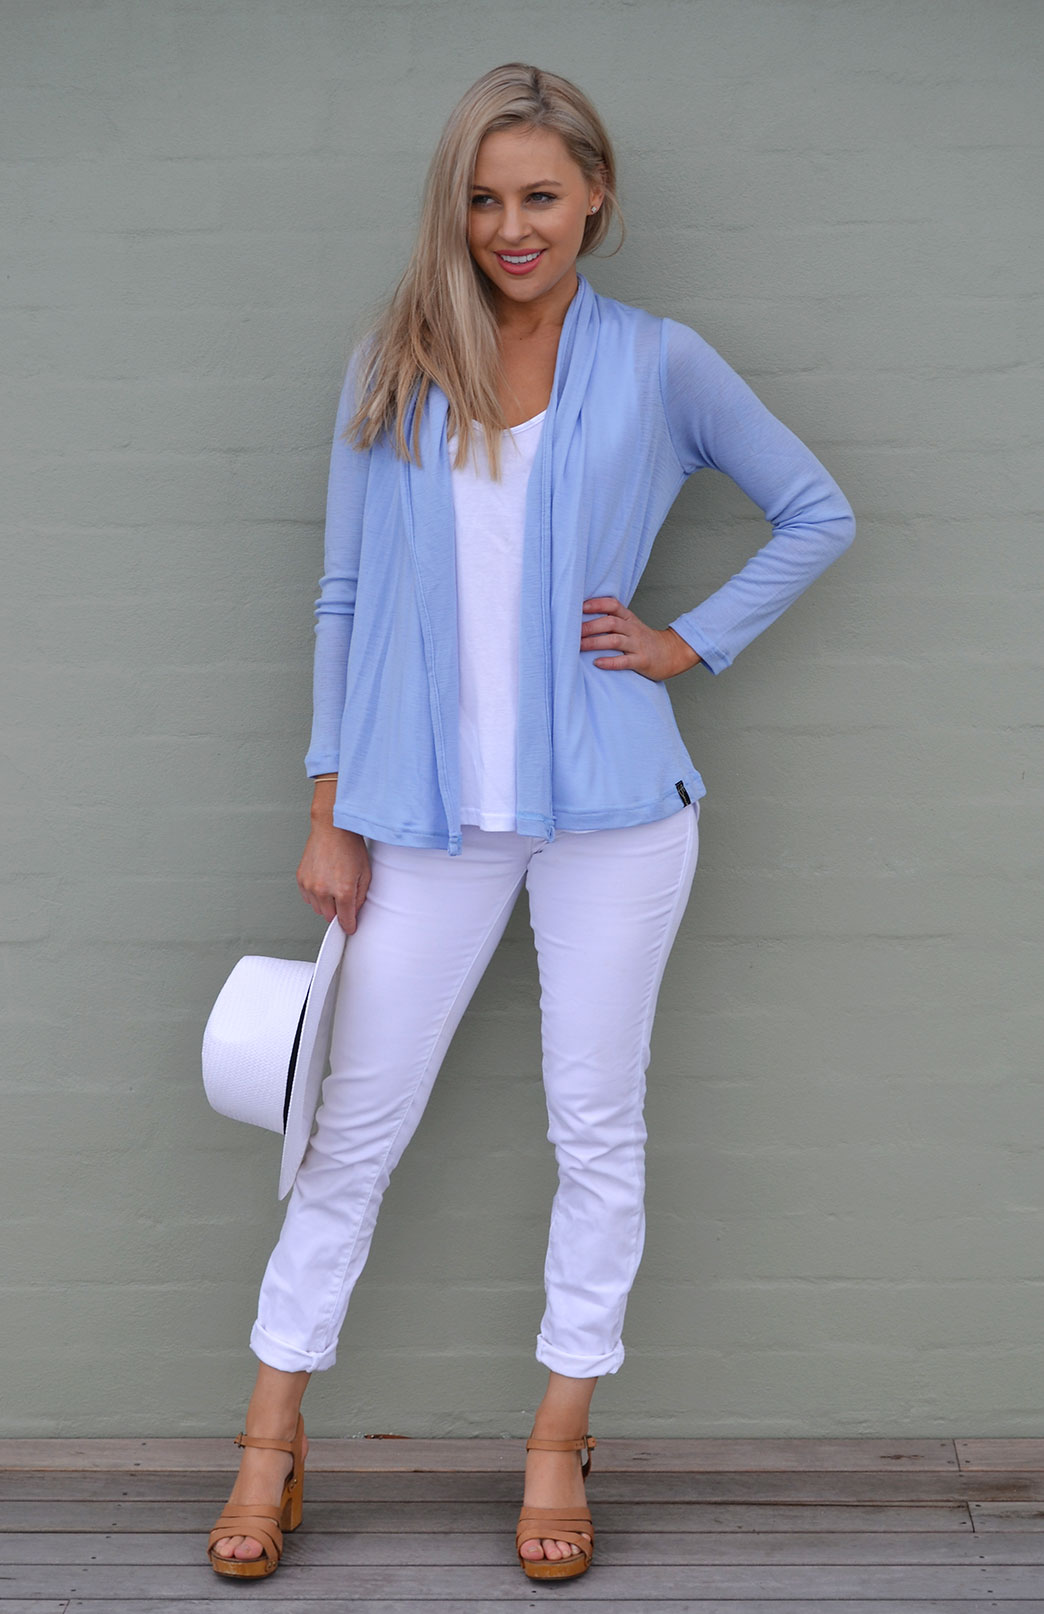 Mini Drape Cardigan - Women's Soft Pale Blue Long Sleeve Merino Wool Cardigan - Smitten Merino Tasmania Australia